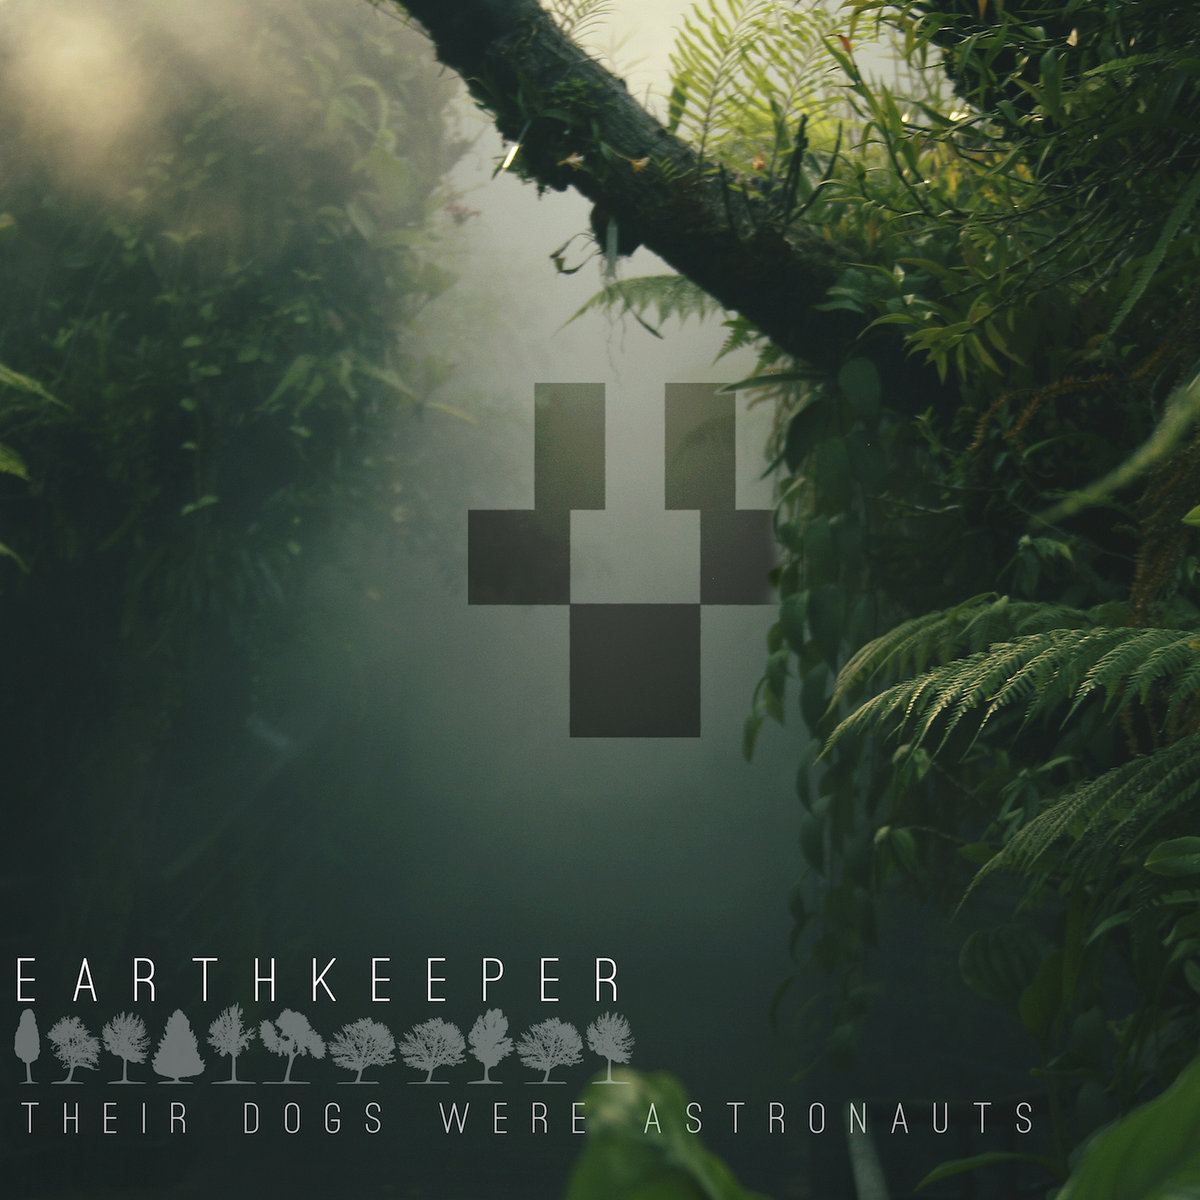 Their Dogs Were Astronauts - Checkpoint 4 @ 'Earthkeeper' album (instrumental metal, metal)